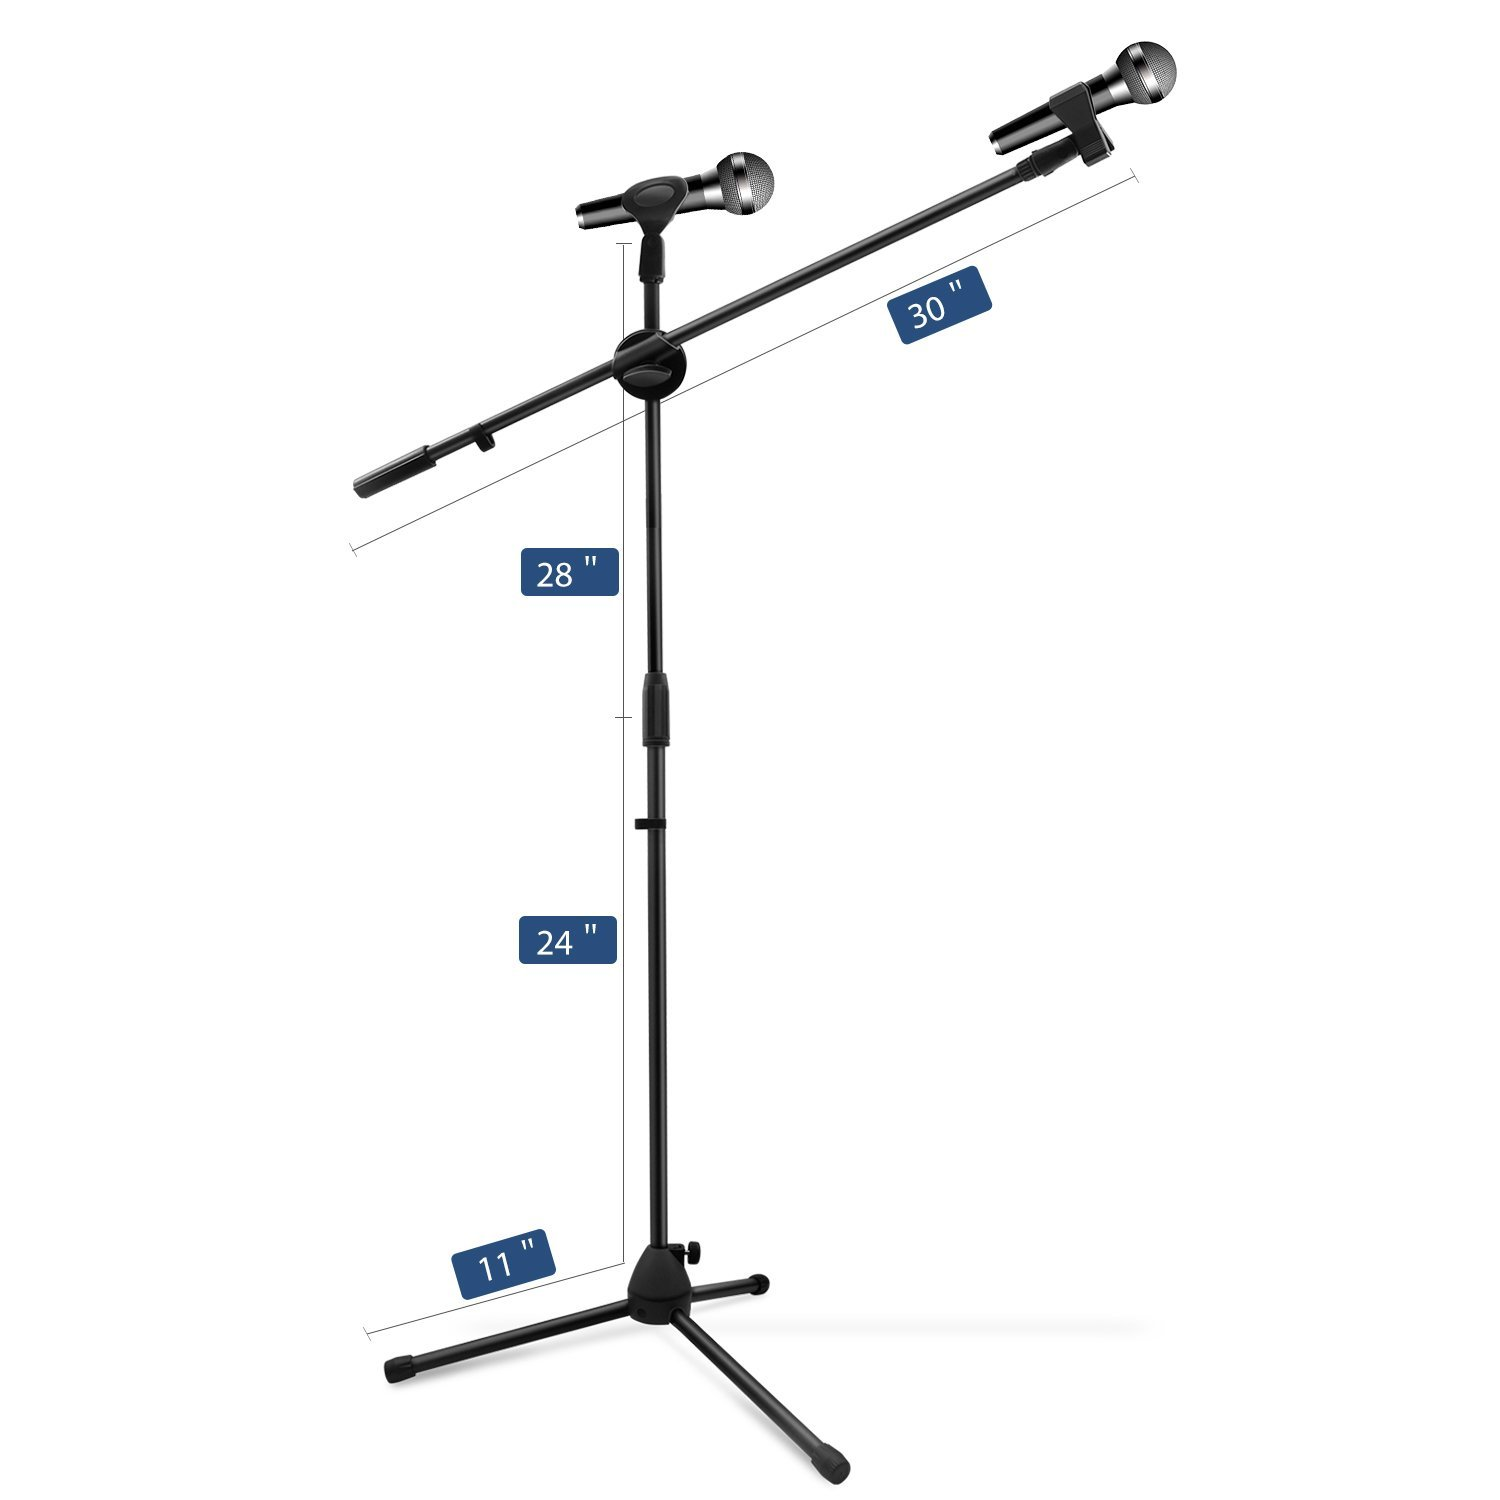 Microphone Stand, Ohuhu Tripod Boom Mic Stands with 2 Mic Clip Holders, Adjustable, Collapsible, Black by Ohuhu (Image #2)